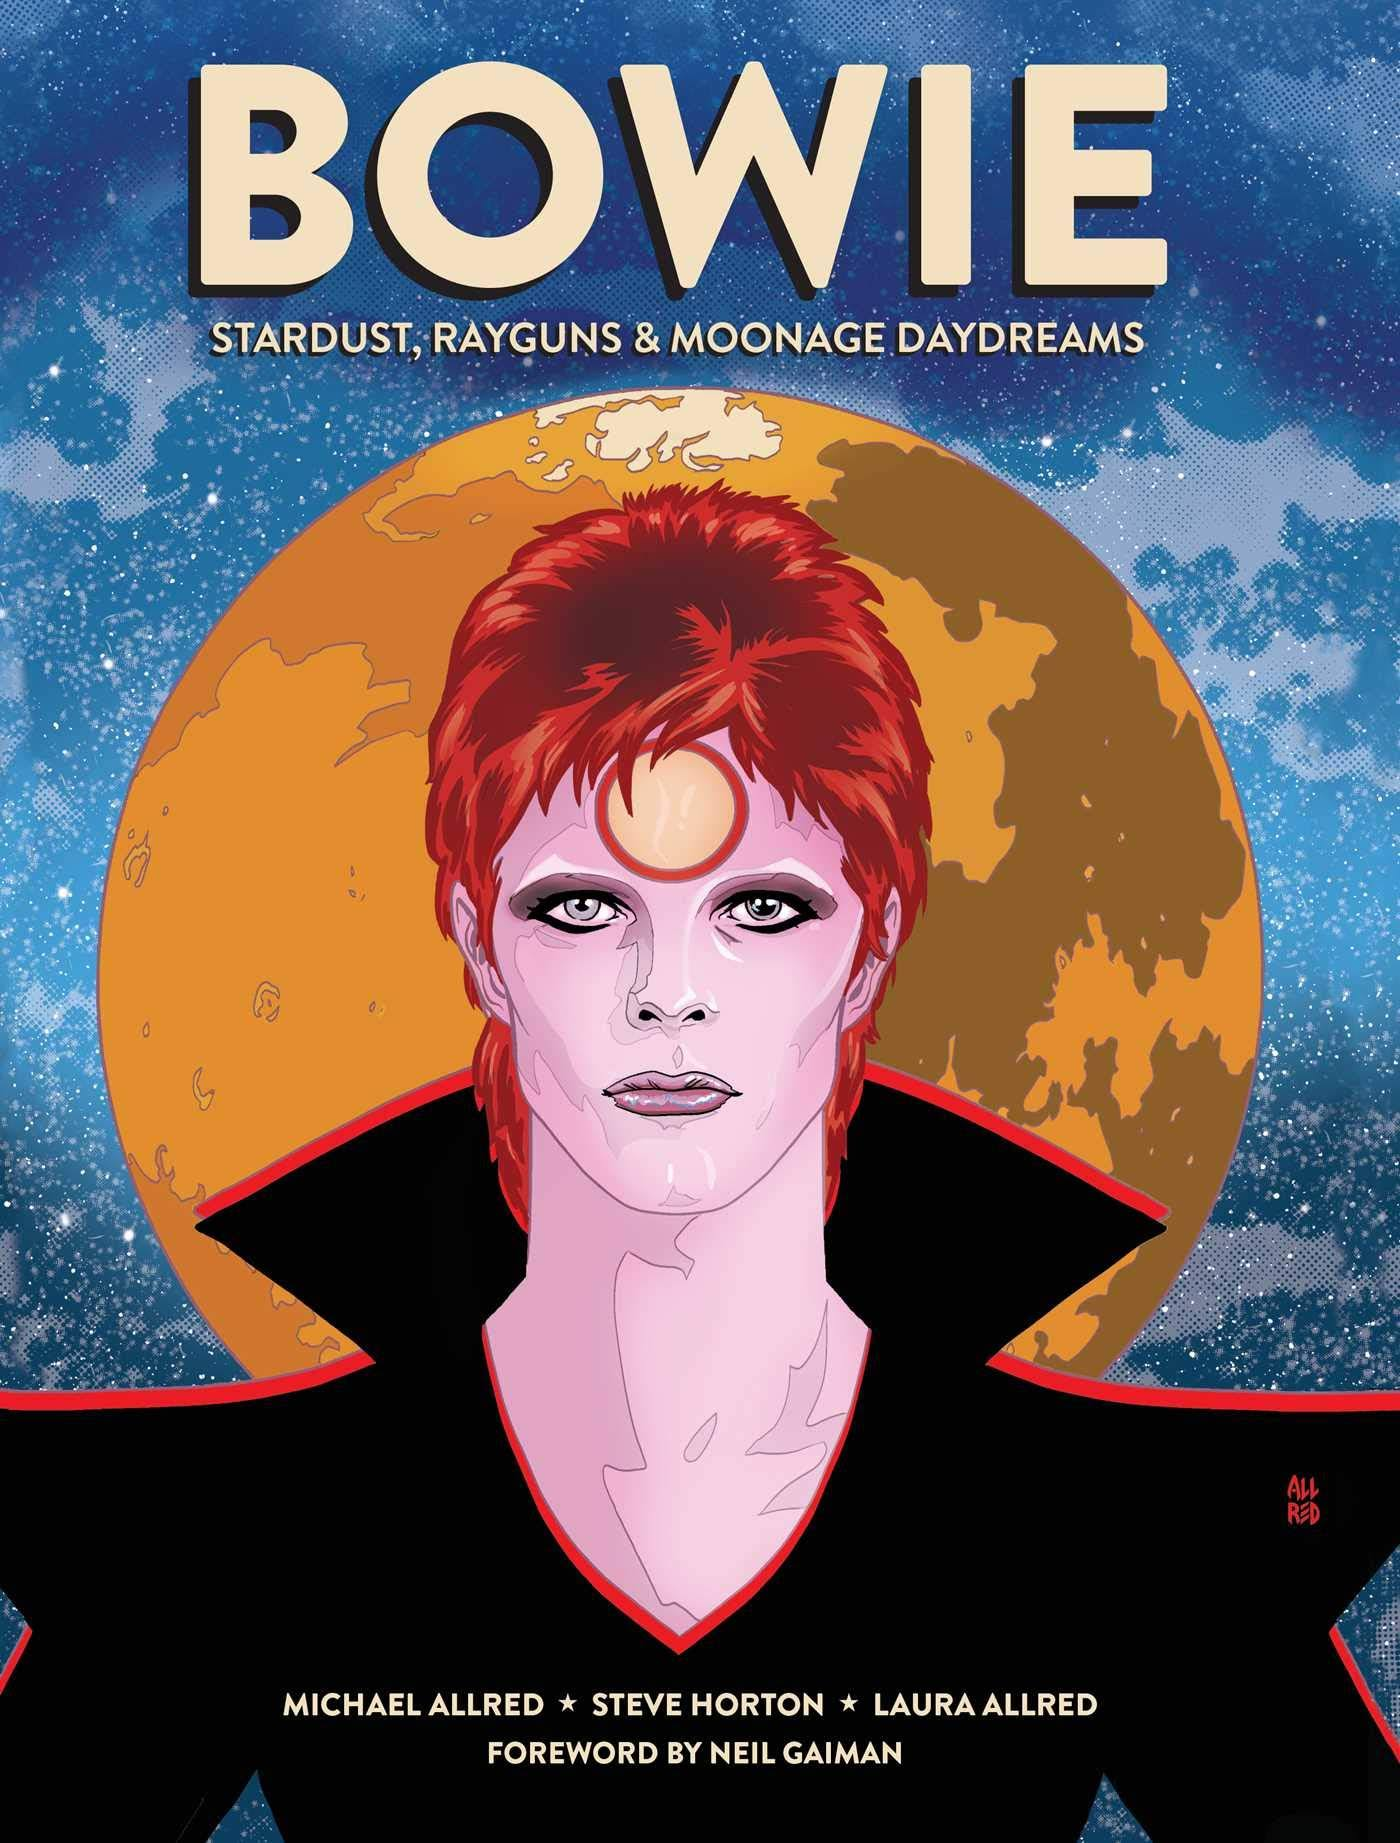 Bowie: Stardust, Rayguns, and Moonage Daydreams - Steve Horton & Michael Allred